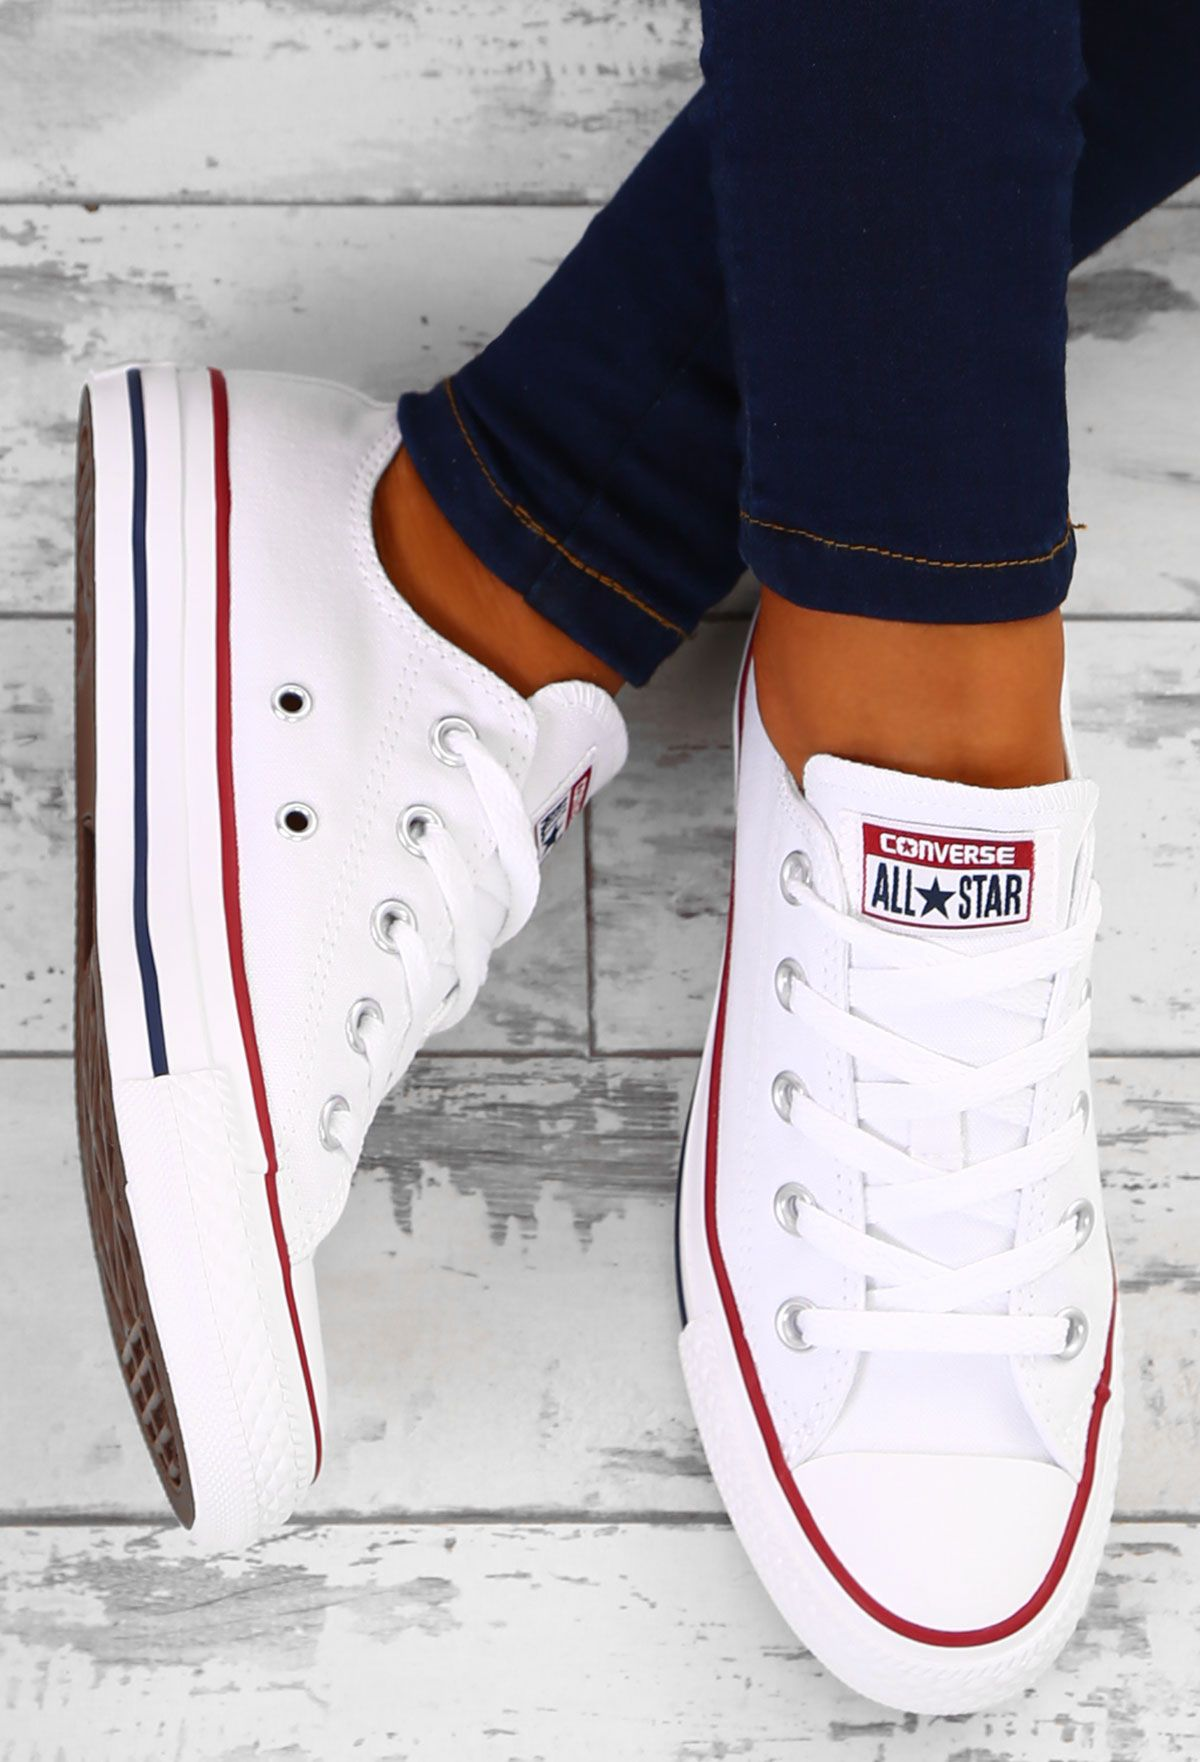 539b52ce23a1e8 Be a total Converse cutie in these classic white Converse trainers! These  Chuck Taylor Converse feature the classic navy and red stripe and will go  with ...